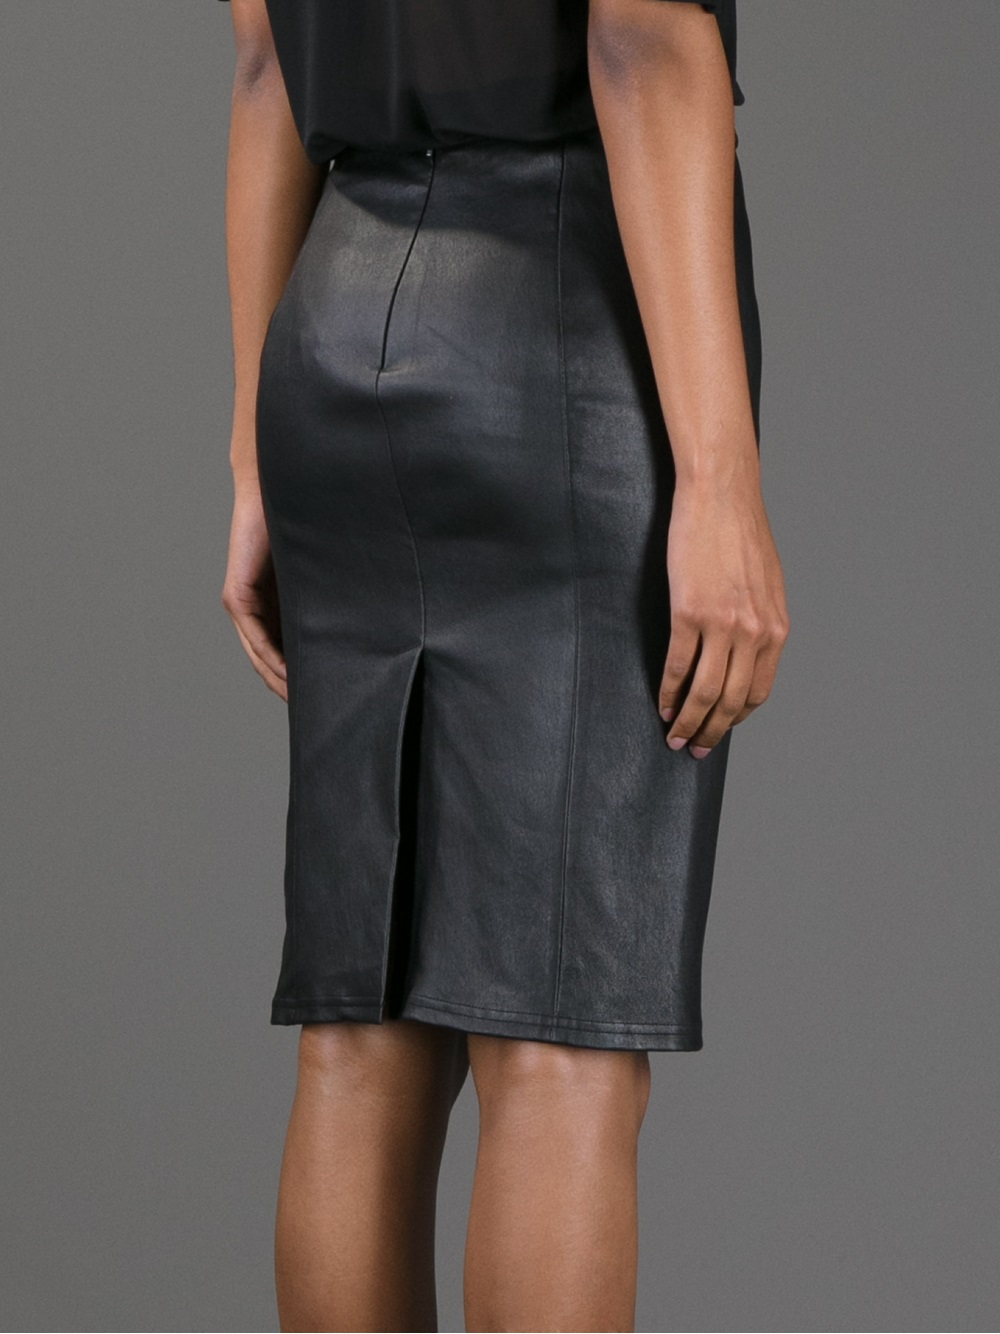 roberto cavalli quilted leather skirt lyst